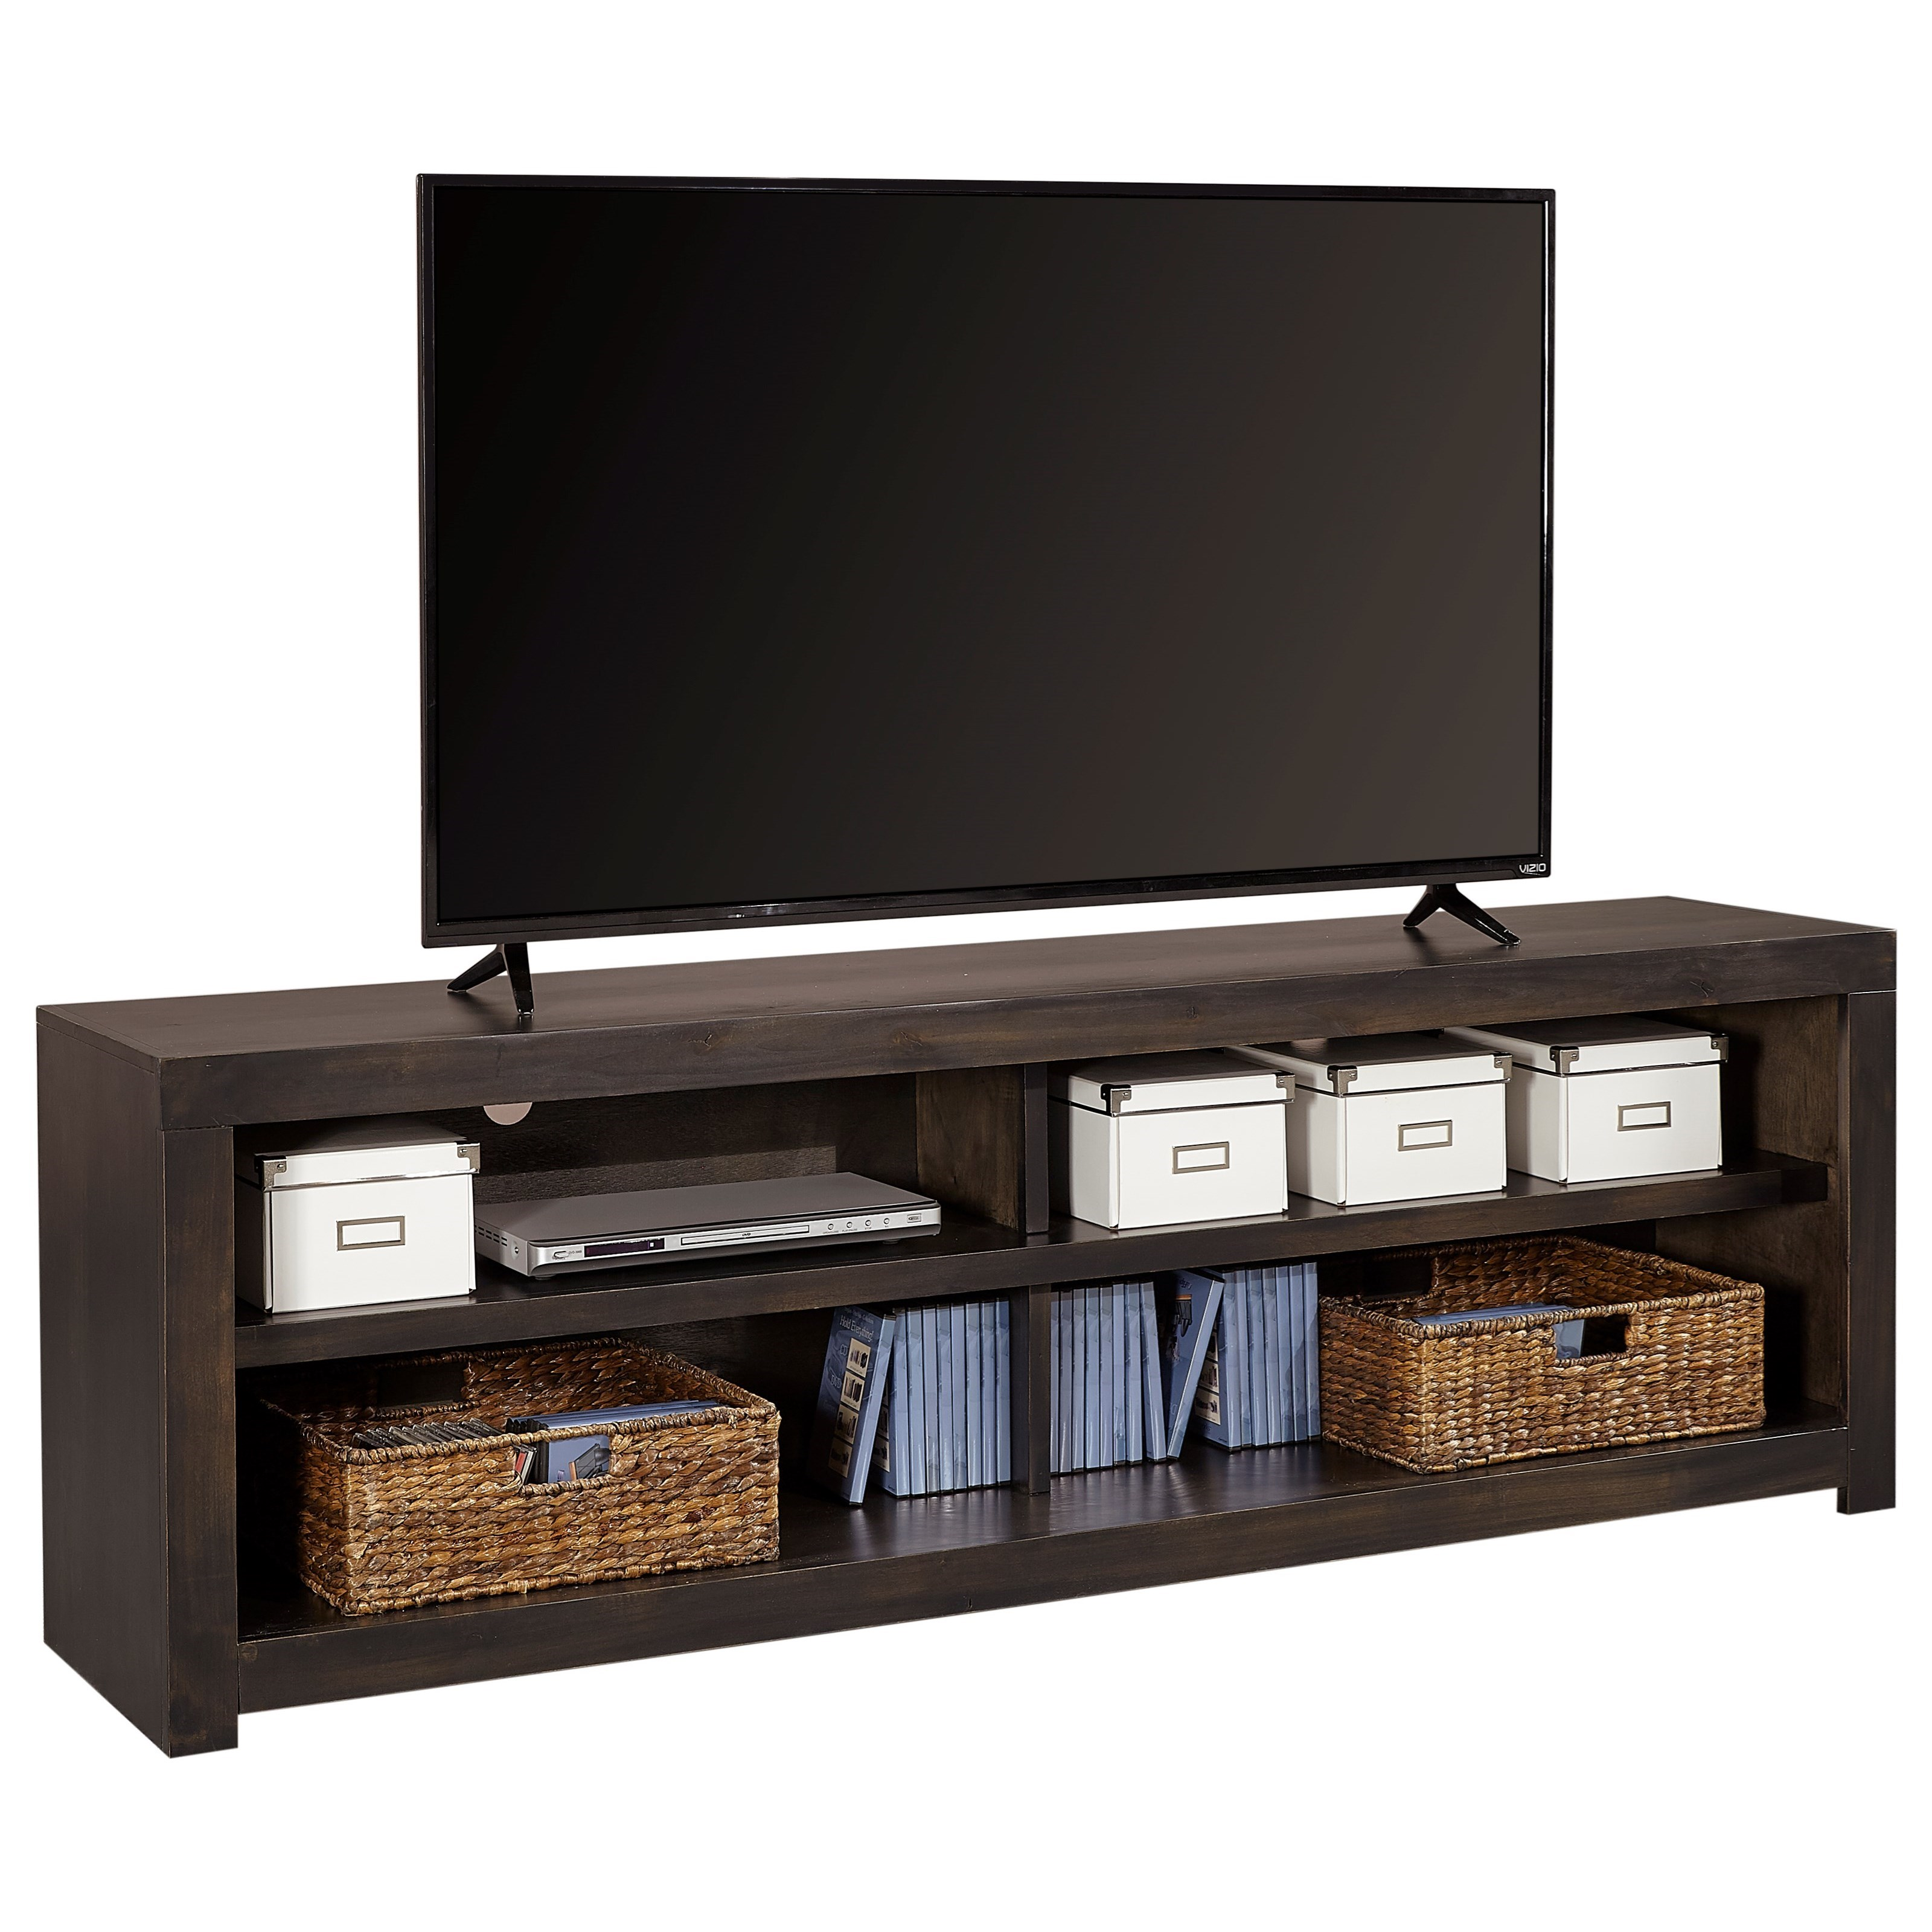 "Avery Loft 74"" TV Console by Aspenhome at Dream Home Interiors"